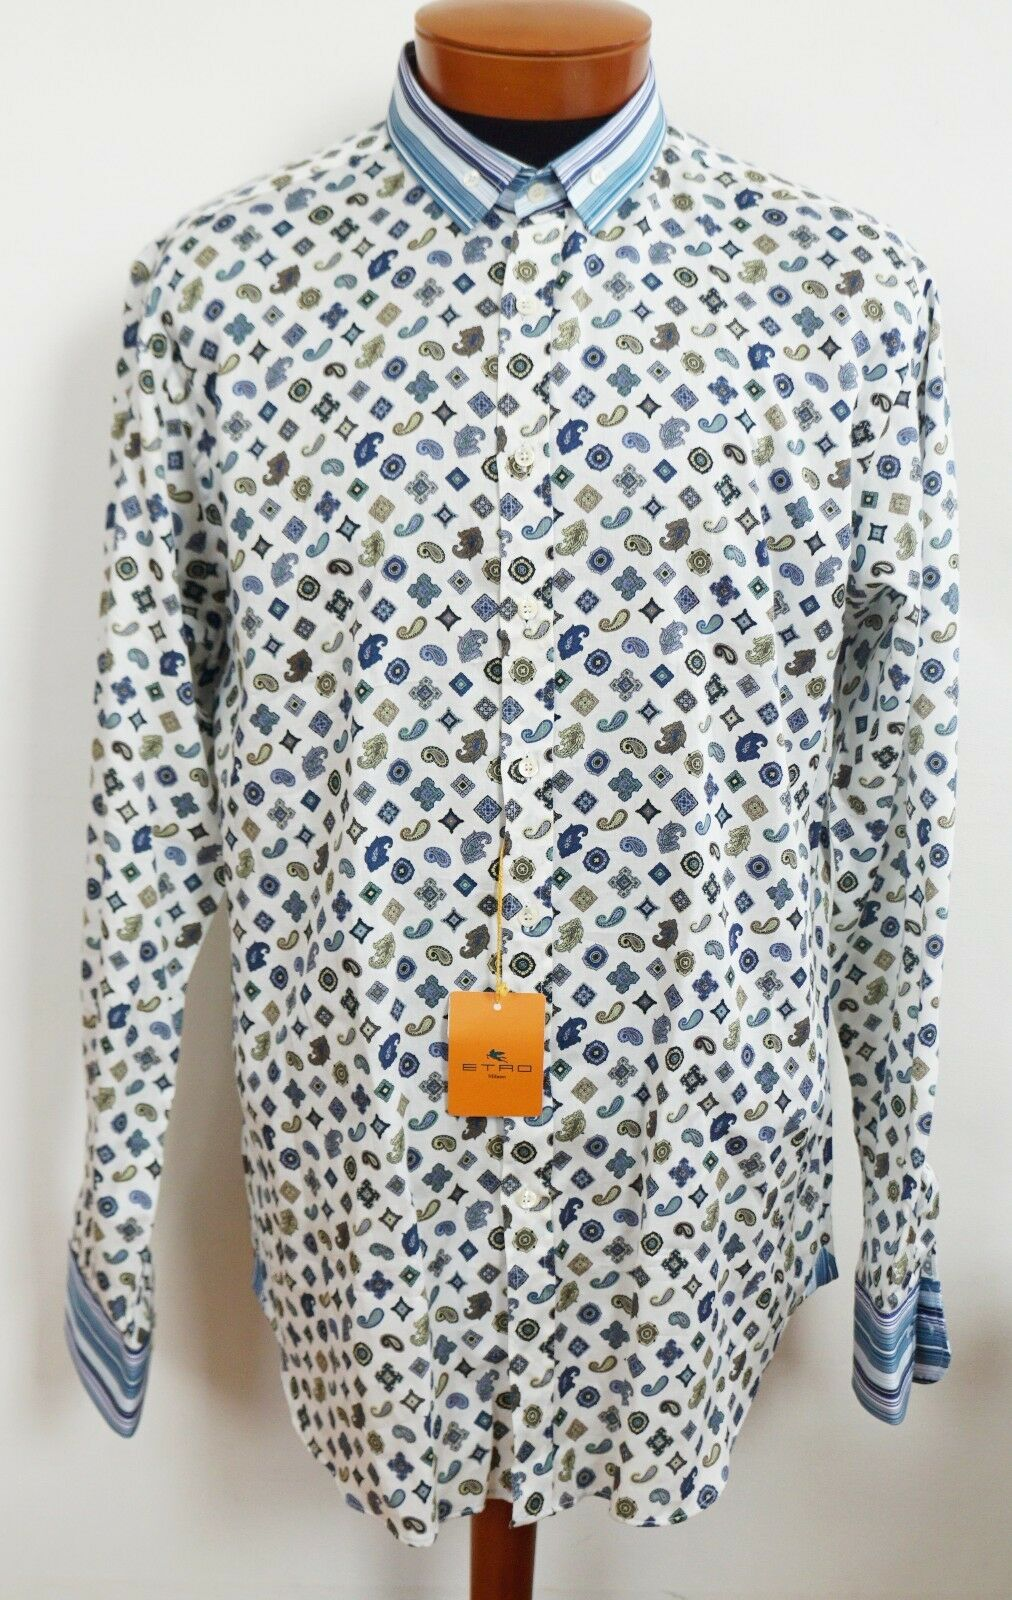 NWT Authentic ETRO Milano PAISLEY Printed SLIM FIT Long-Sleeve Shirt 44